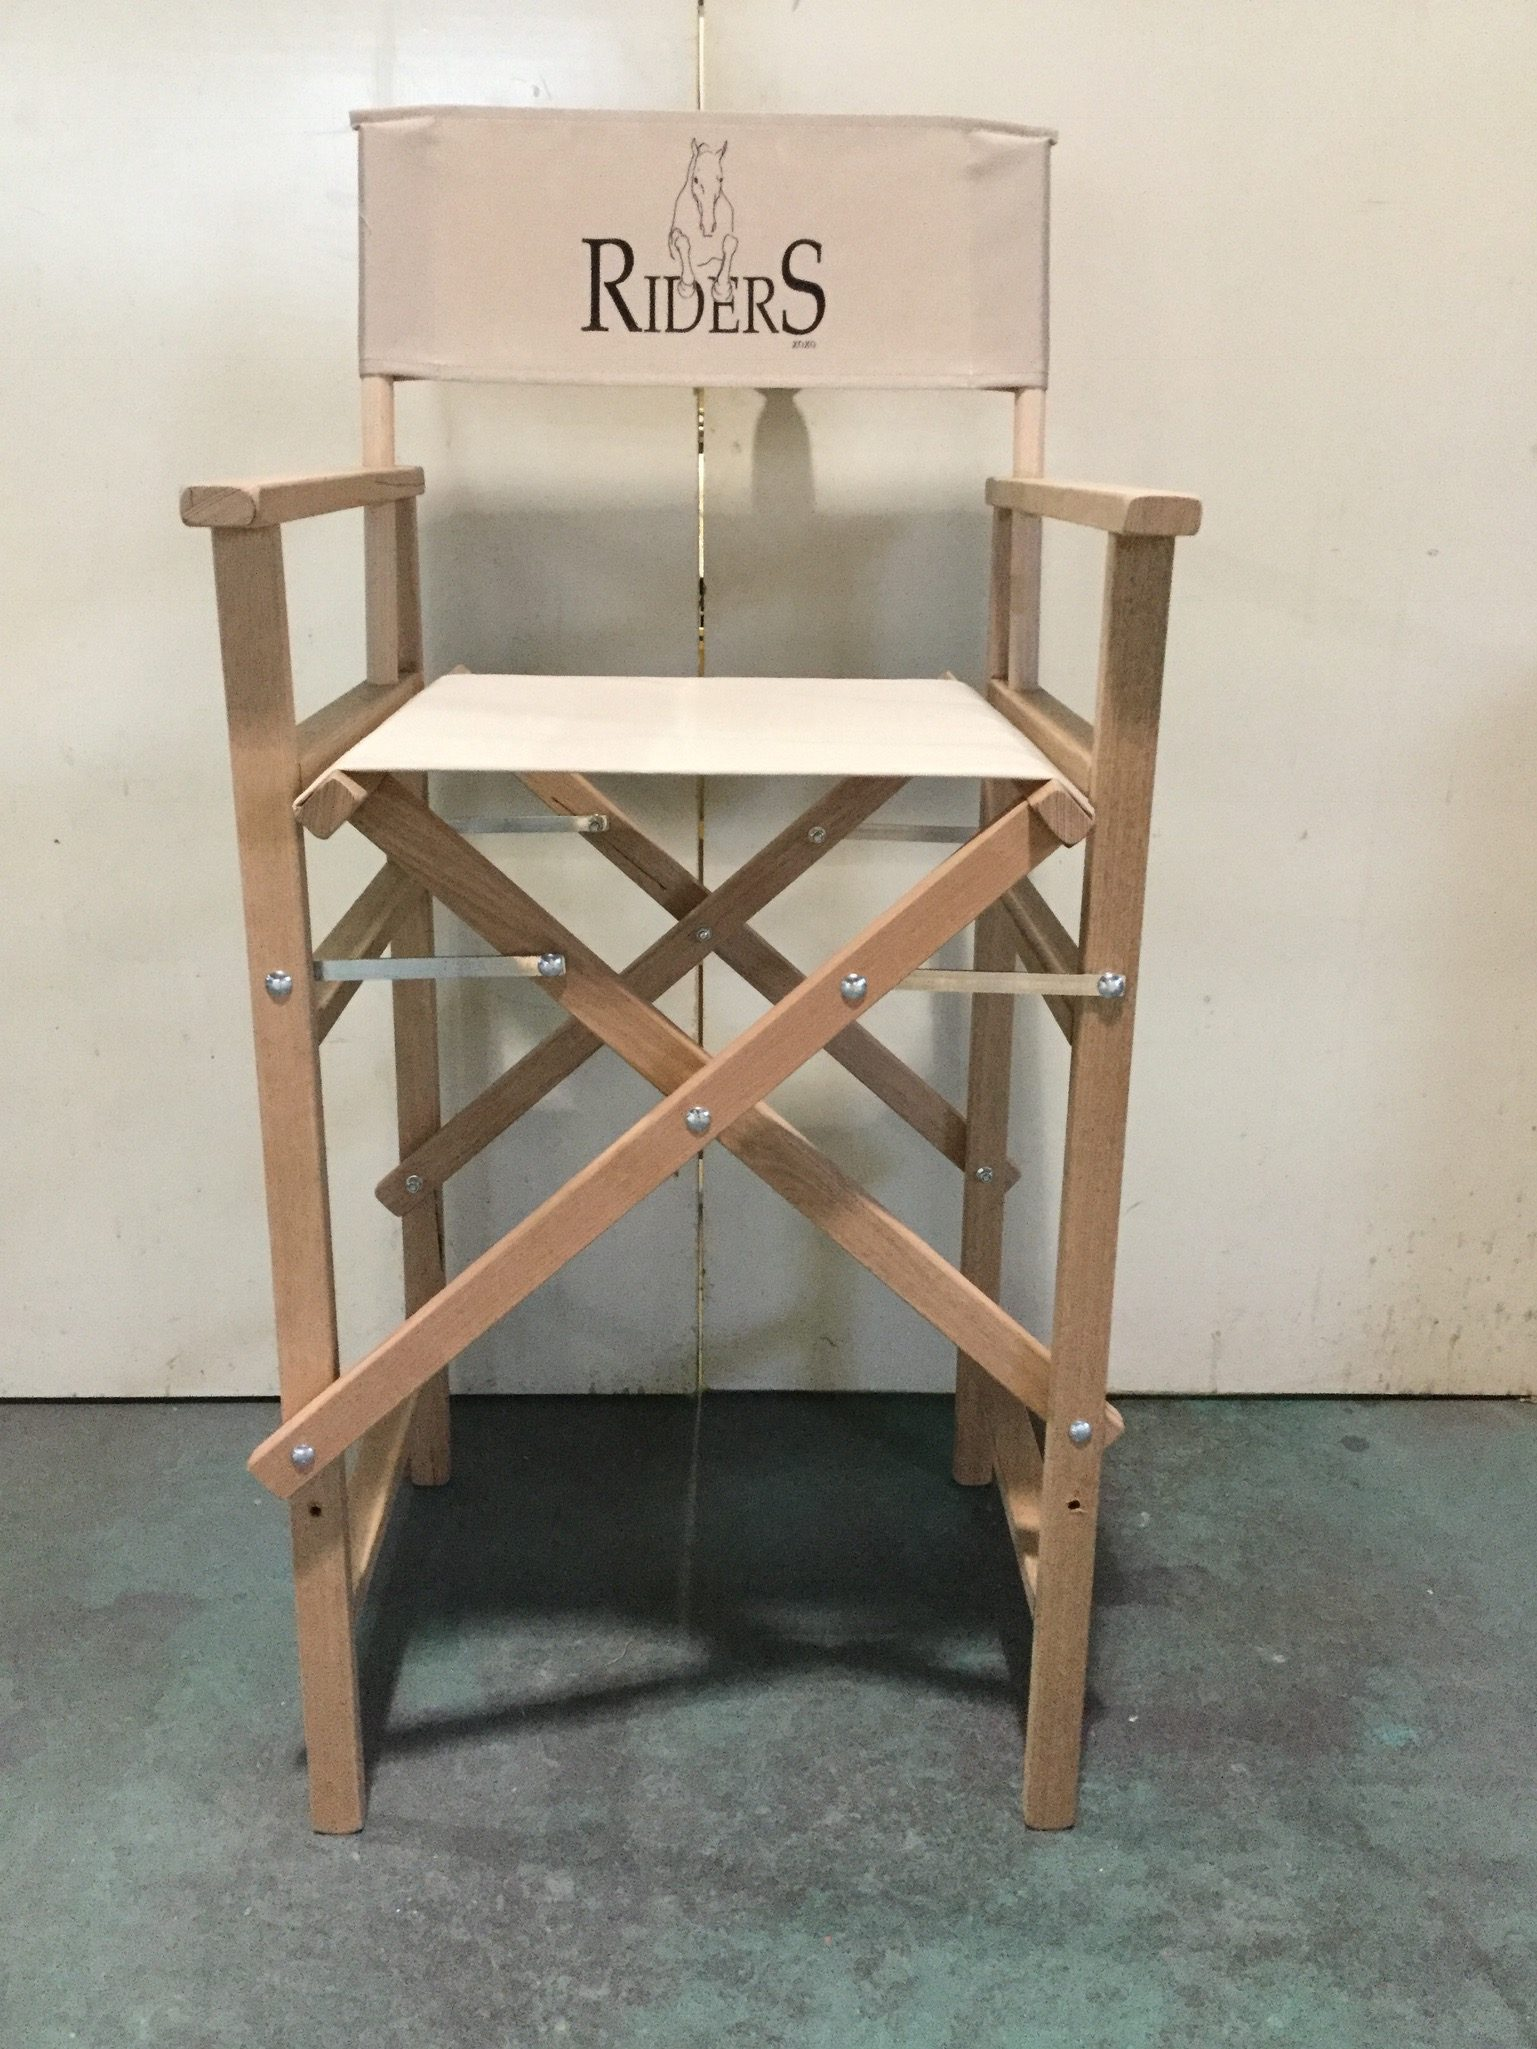 Make-up-Chair-Riders